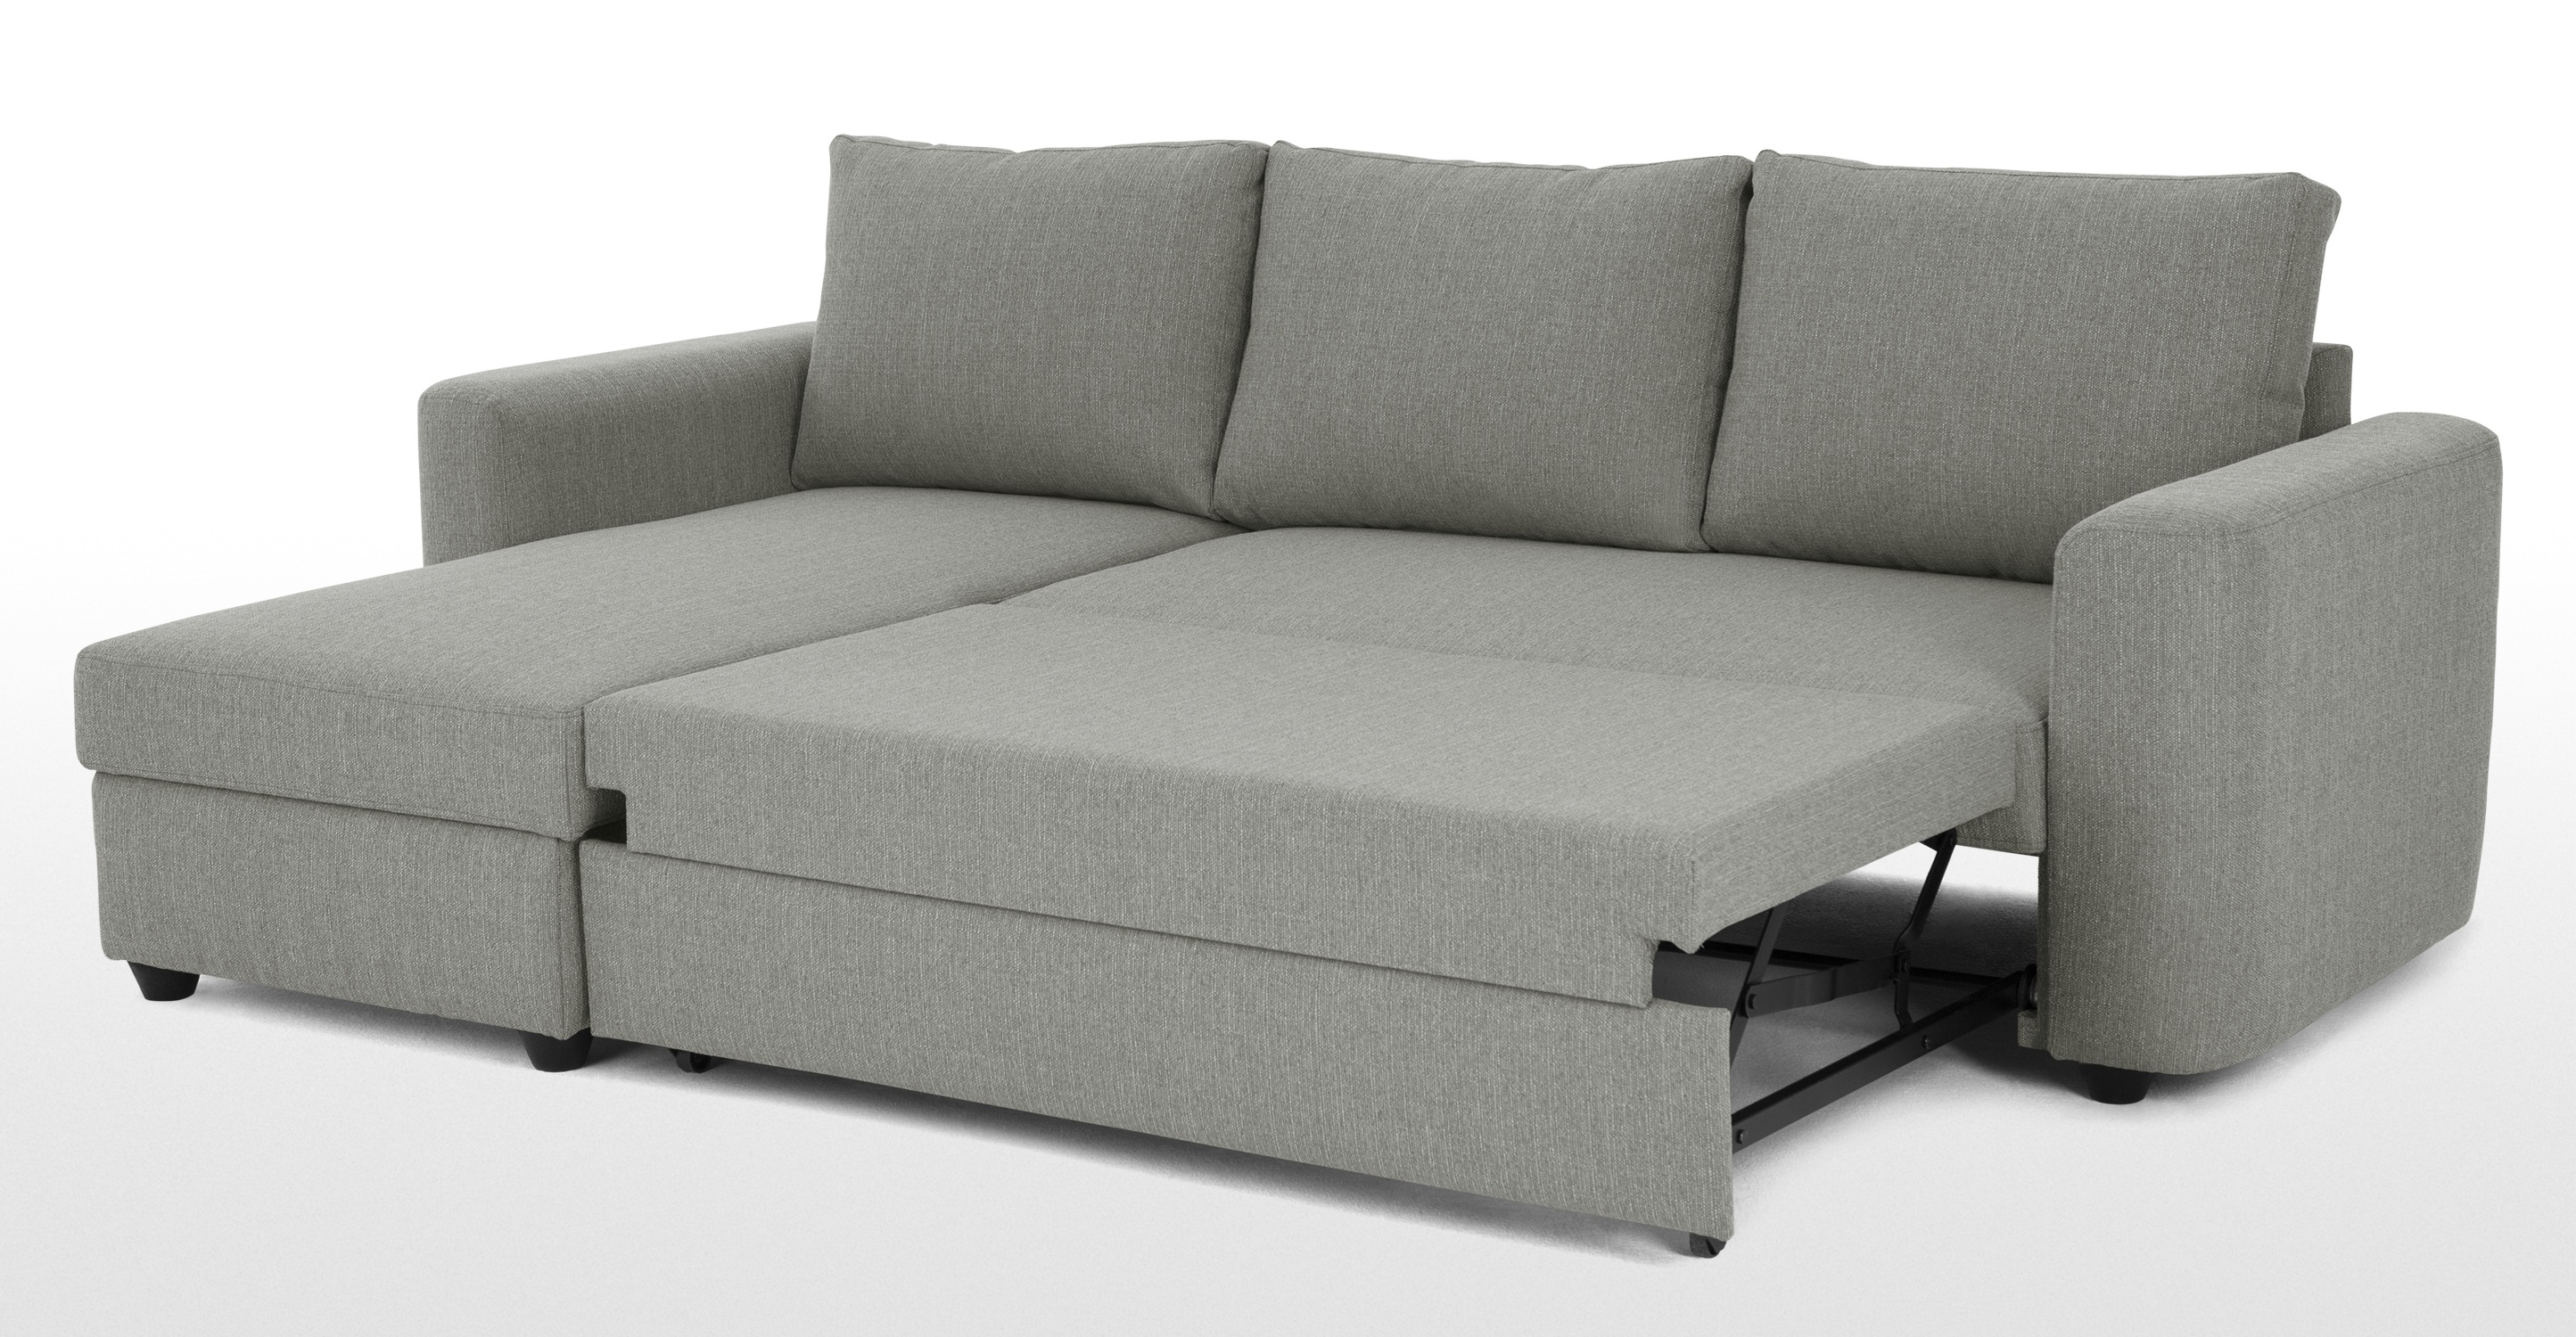 corner sofa bed aidian corner storage sofa bed, silver grey | made.com TTLIRPD